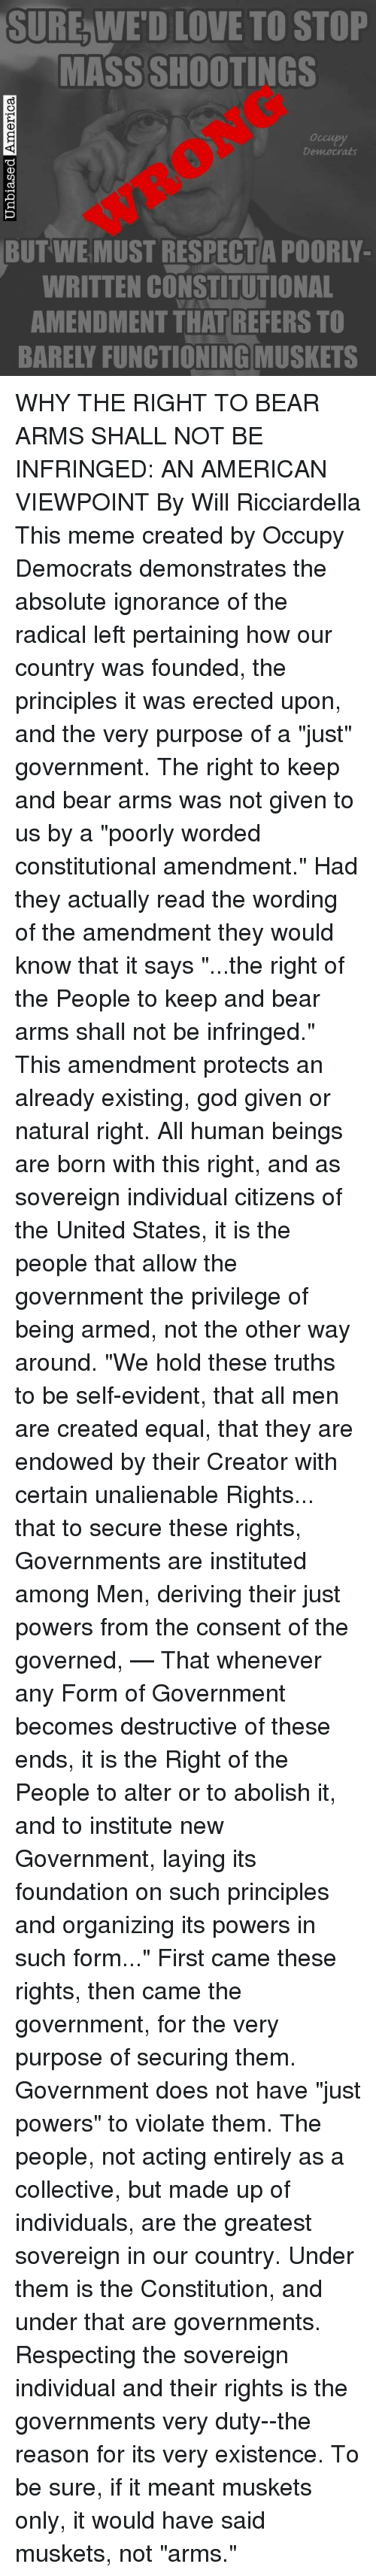 We Hold These Truths To Be Self Evident That All Men Are Created Equal